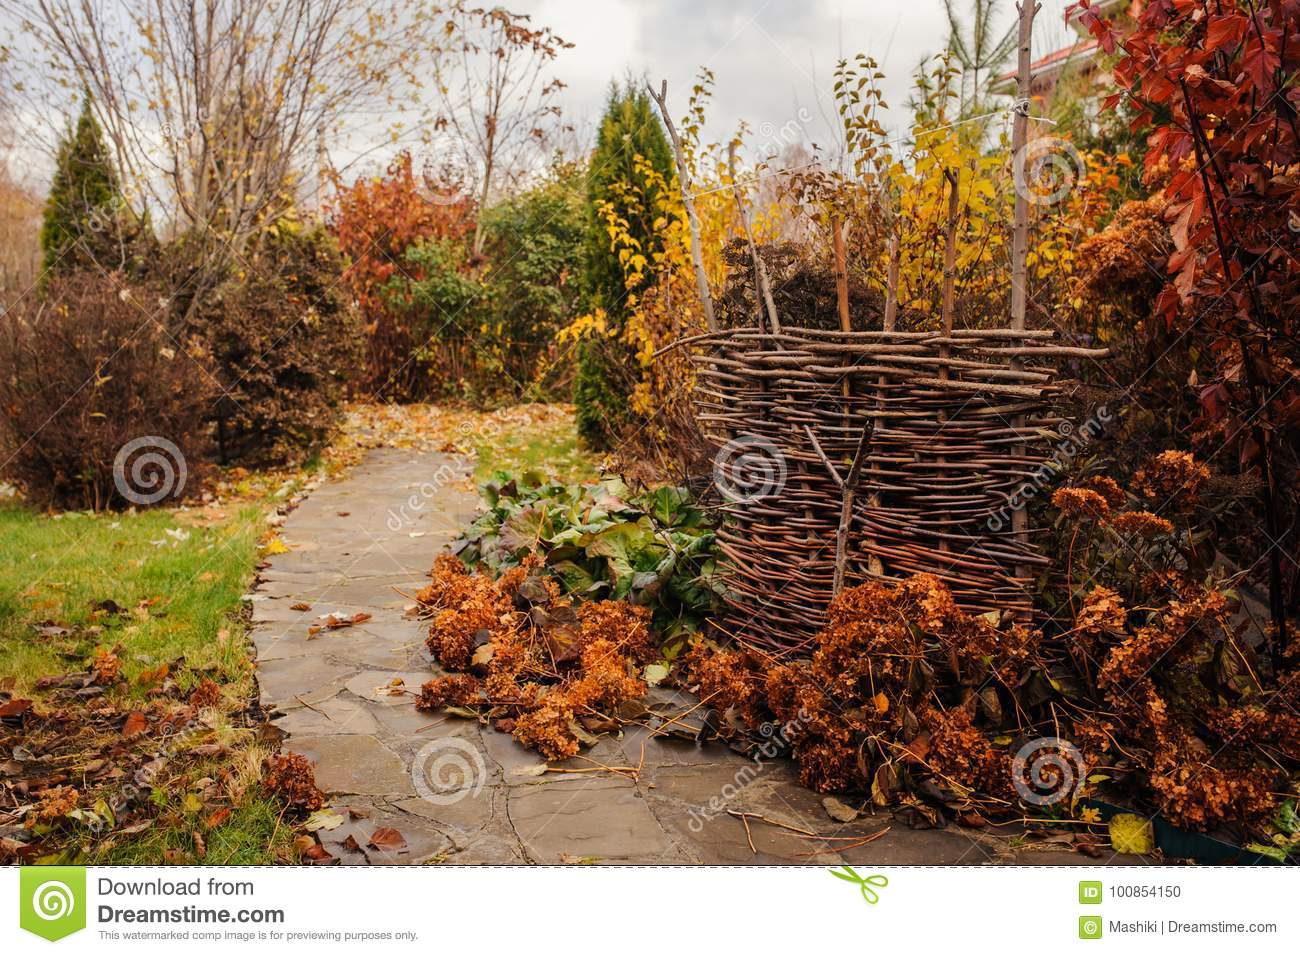 Walking in november garden. Late autumn view with rustic fence